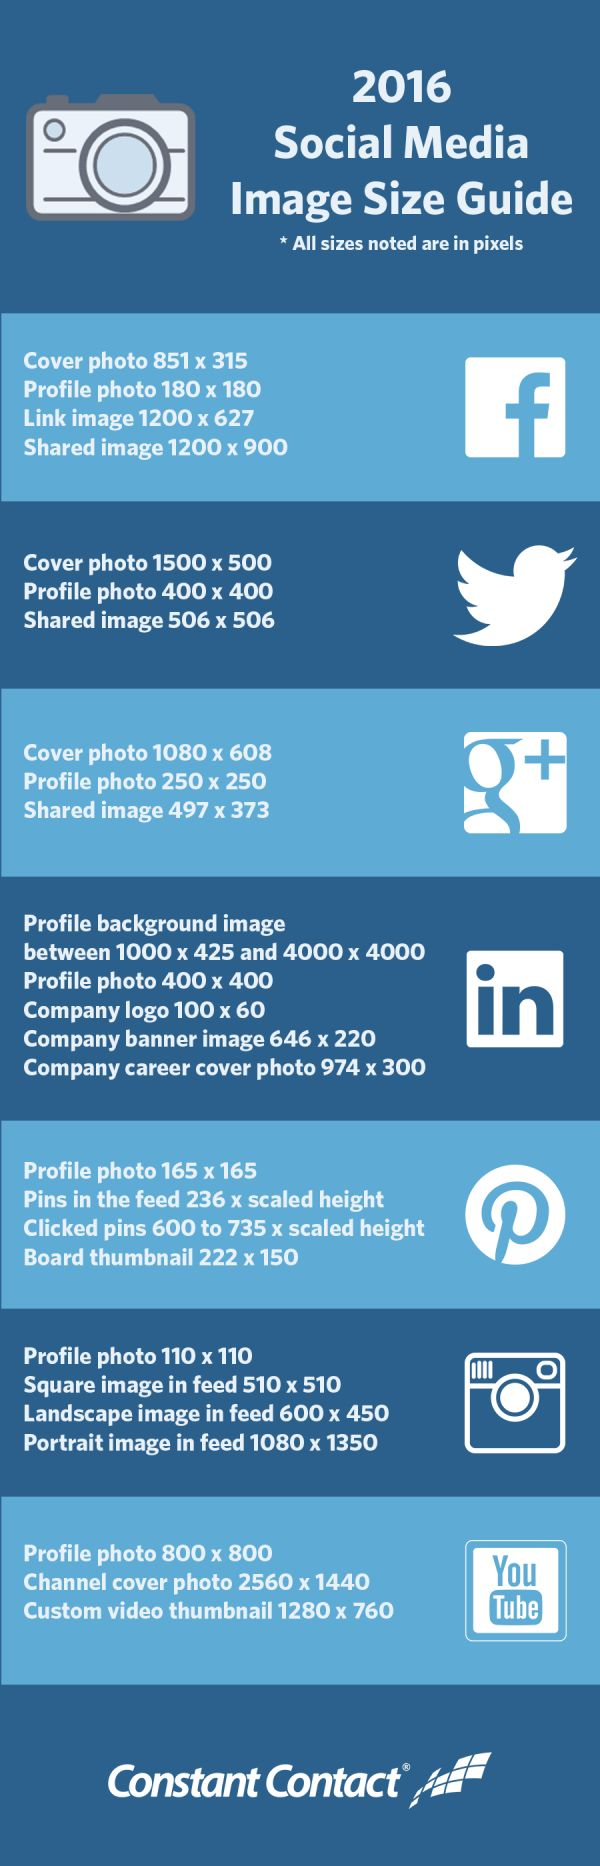 Your complete guide to editing and sizing your pictures to fit each of your social media platforms. Relevant because last week it took me hours to figure out twitter profile picture sizing.